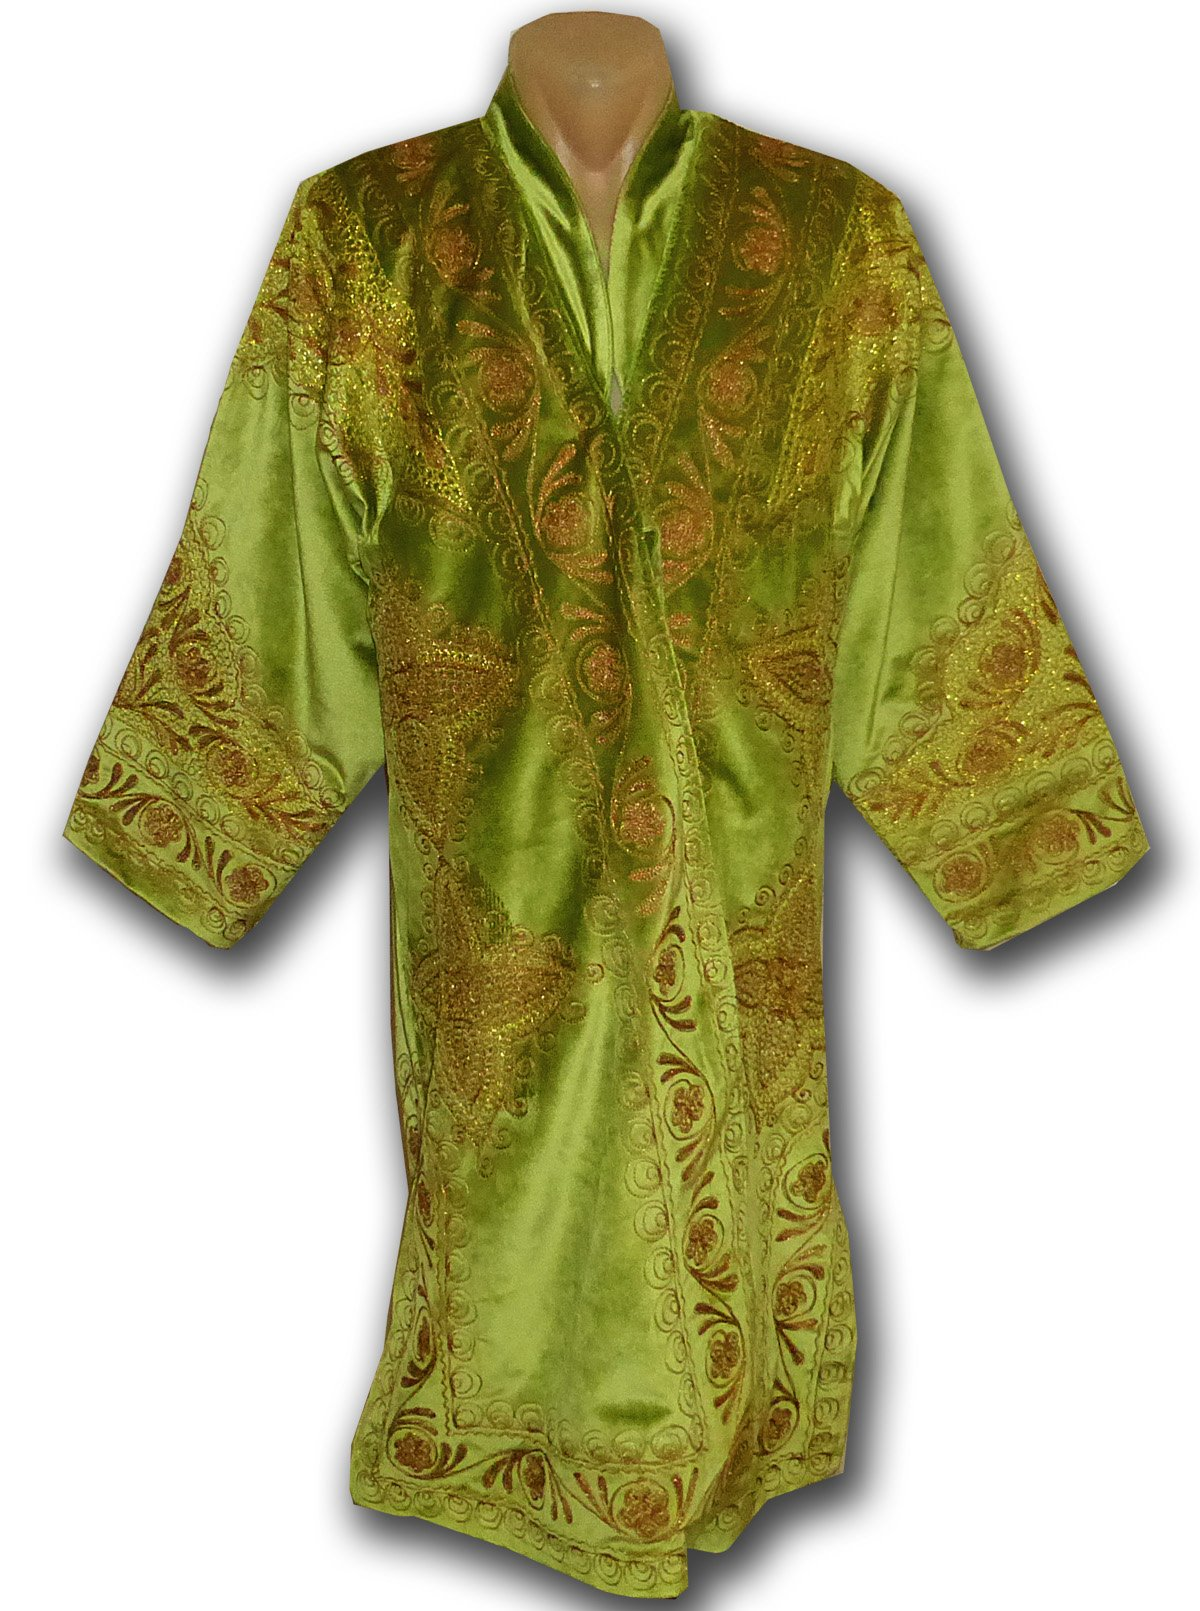 STUNNING-UZBEK-COPPER-SILK-EMBROIDERED-ROBE-CHAPAN-FROM-BUKHARA-M239